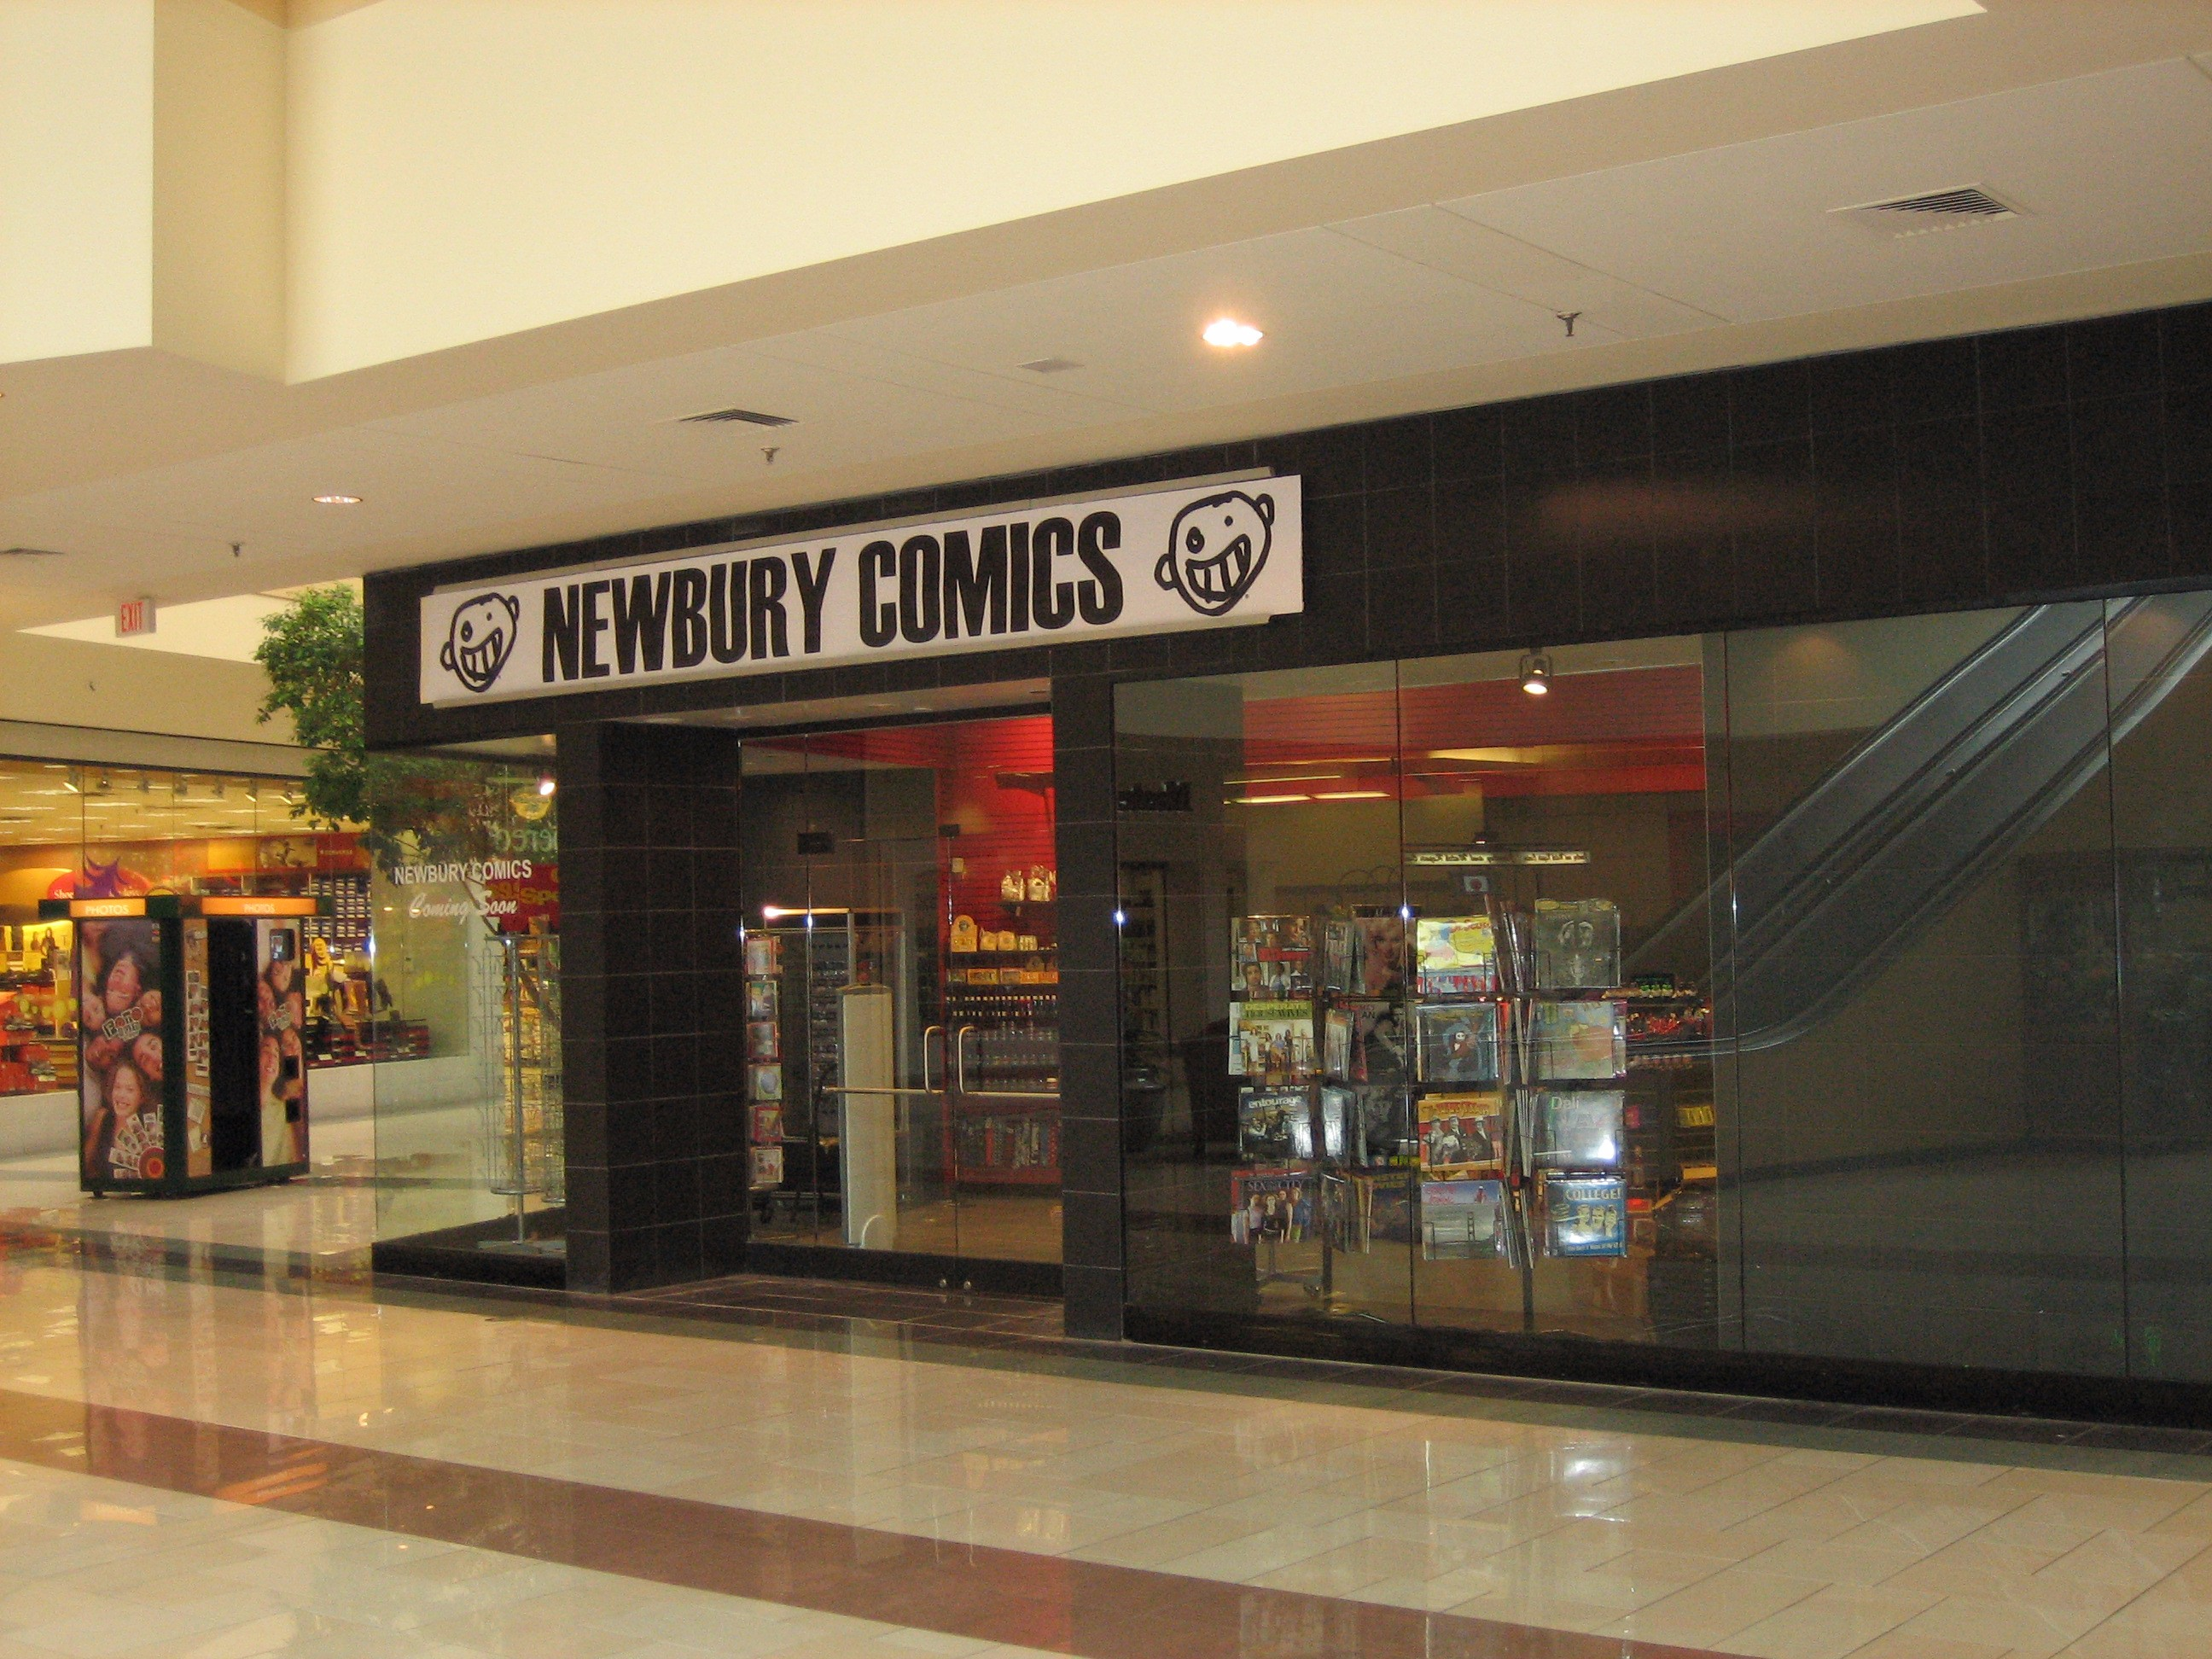 Newbury Comics: Sells records, comic books, & posters. These Are the 10 Fastest-Growing Companies in America This Year How the 'eBay of Freight' Became the .